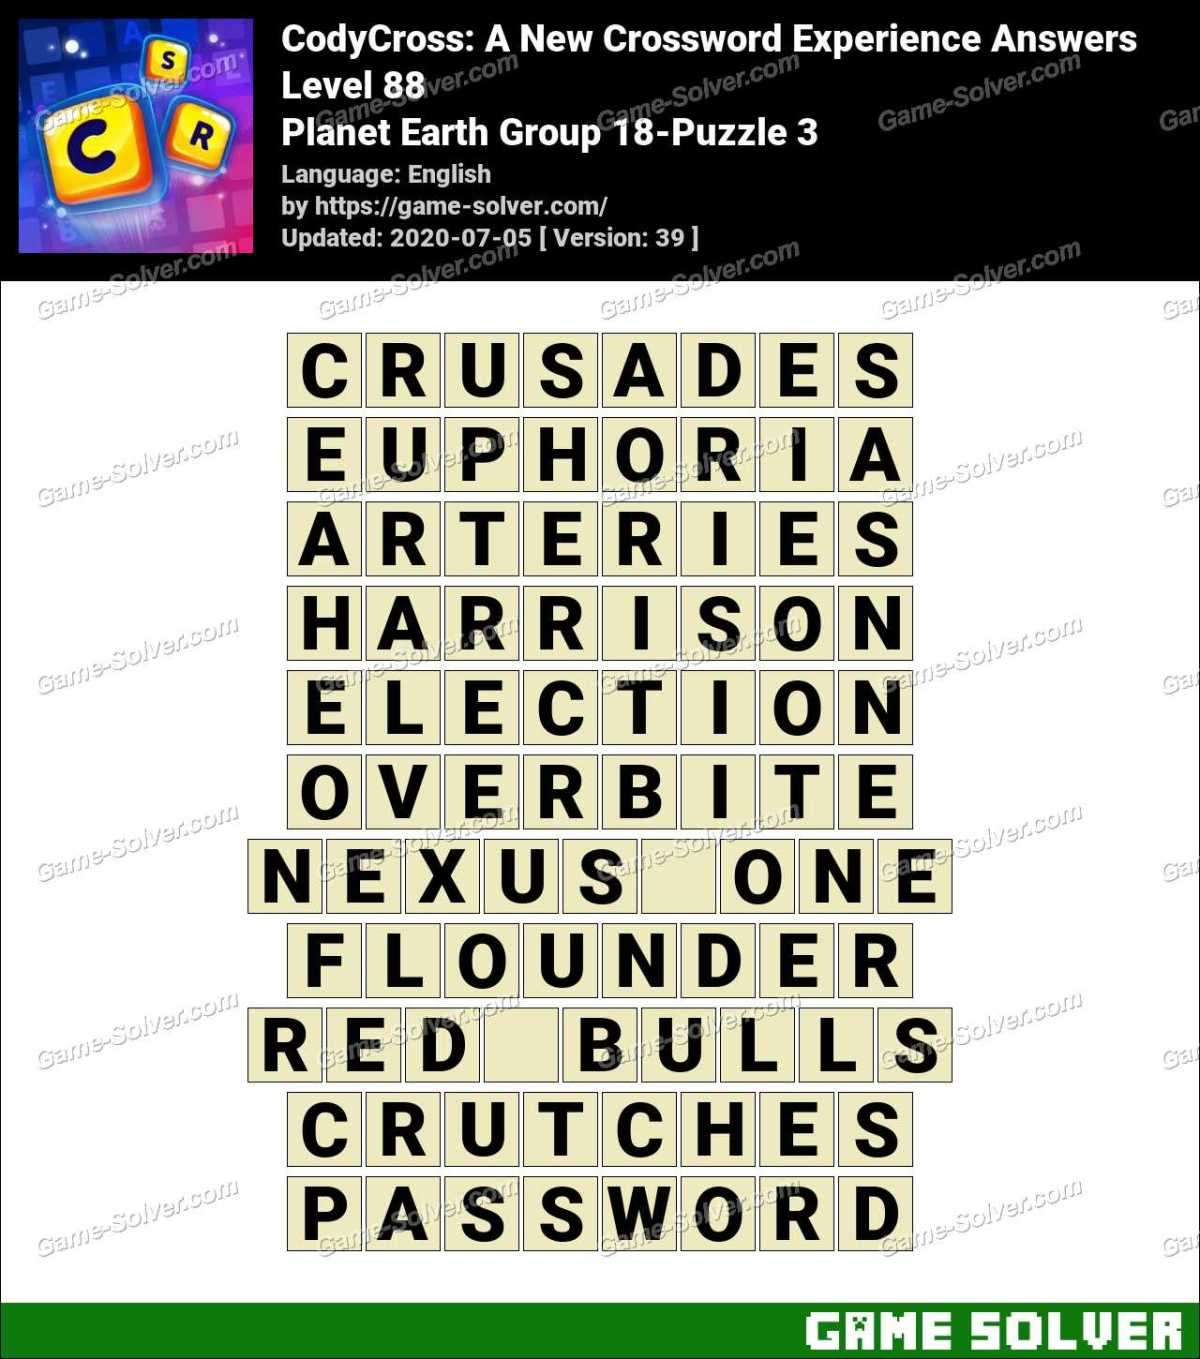 CodyCross Planet Earth Group 18-Puzzle 3 Answers